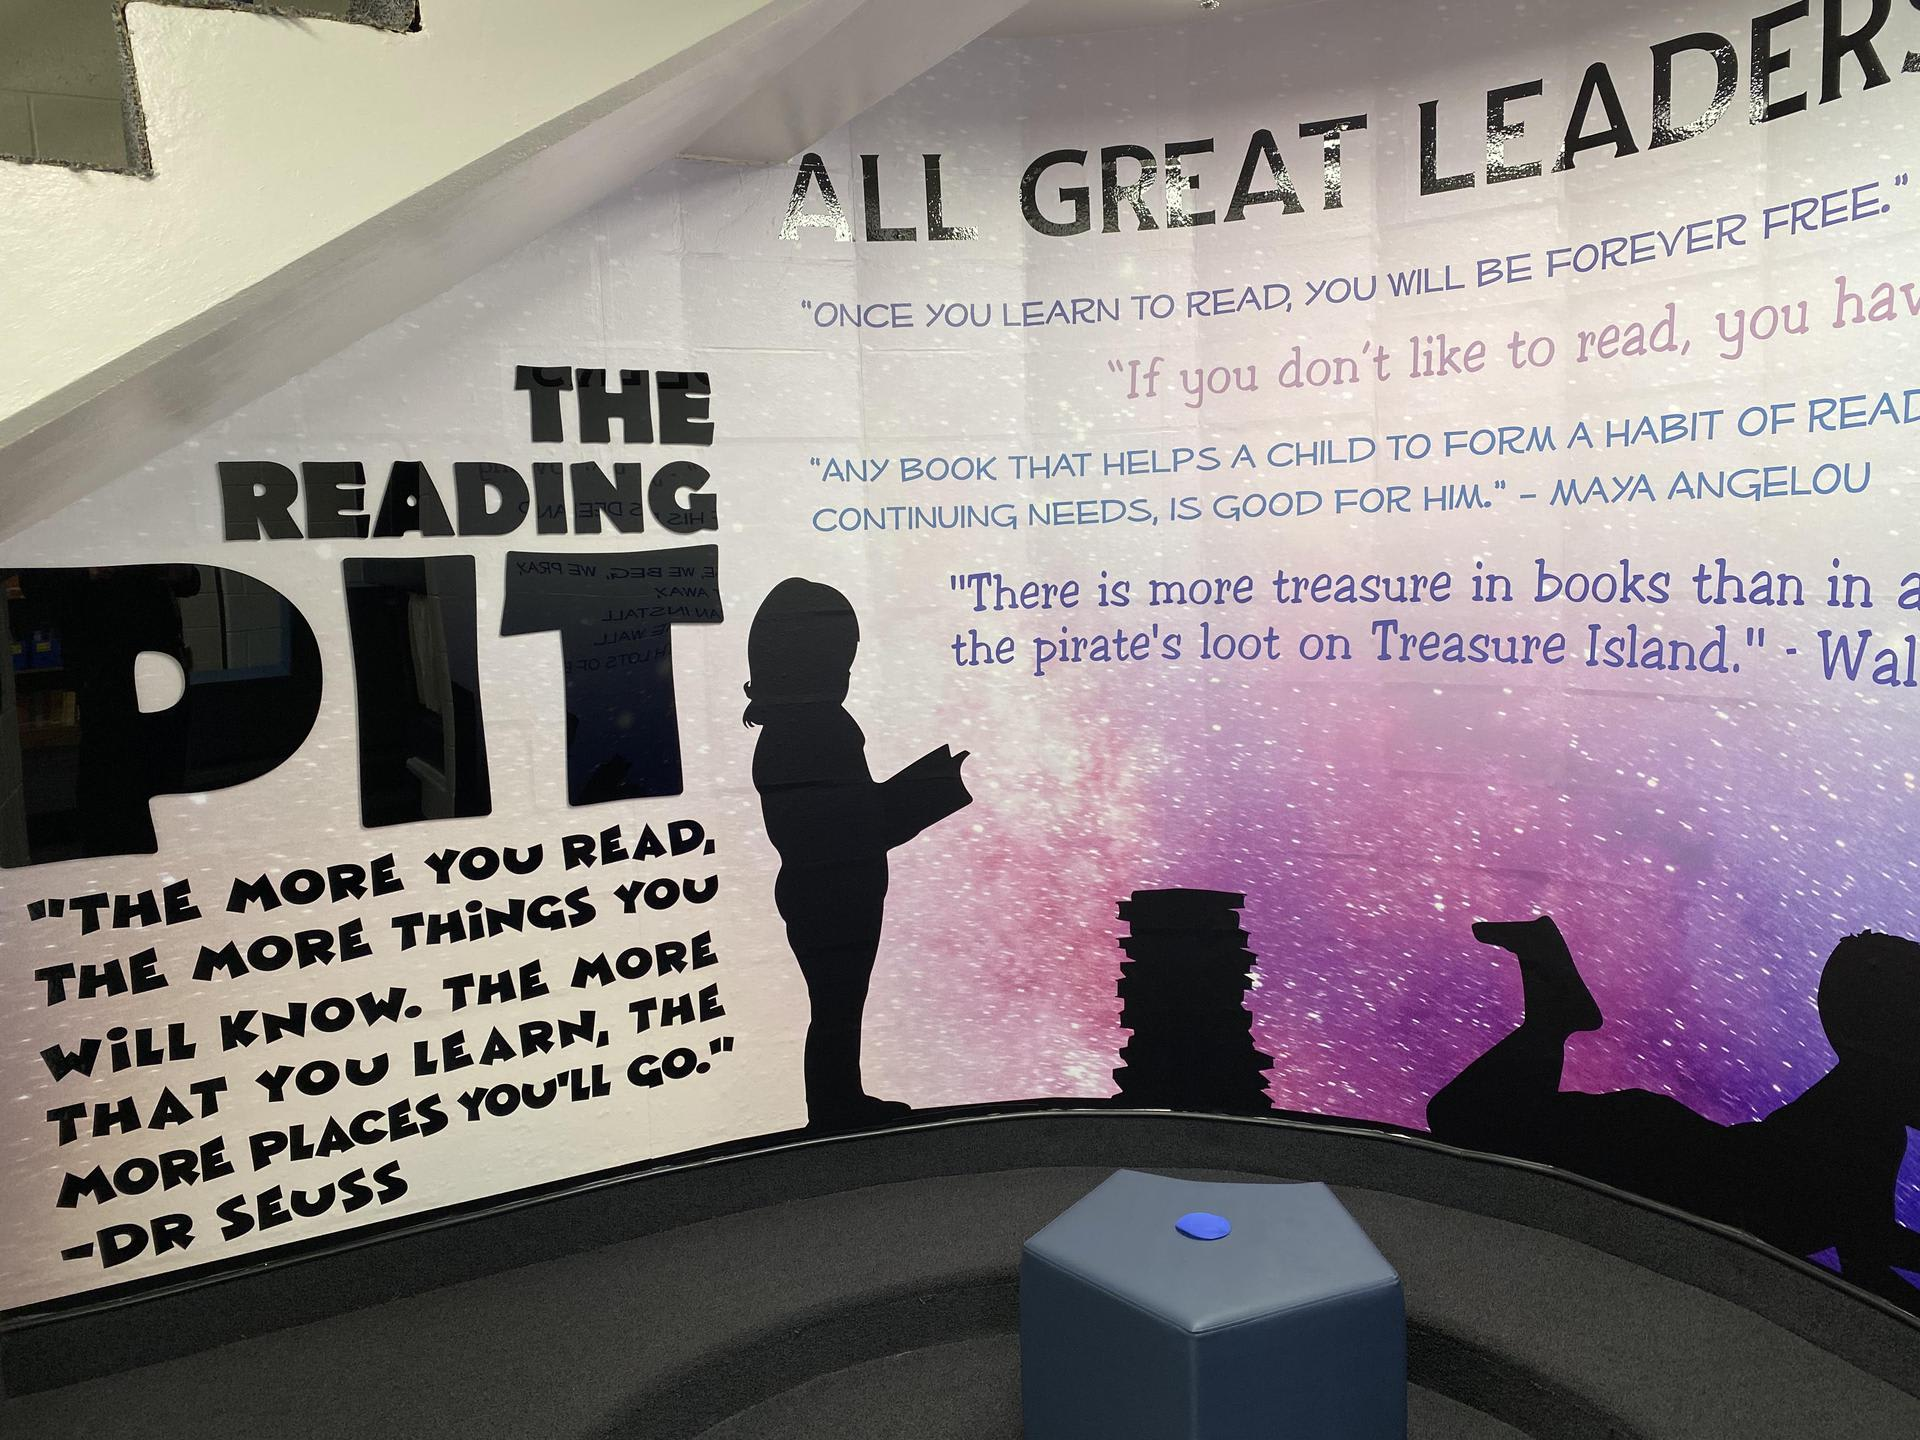 Picture of the new graphics on the Cole Reading Pit in the Library. Includes silhouettes of children reading and quotes from authors about reading. Black lettering with purples, blues, and starry background.